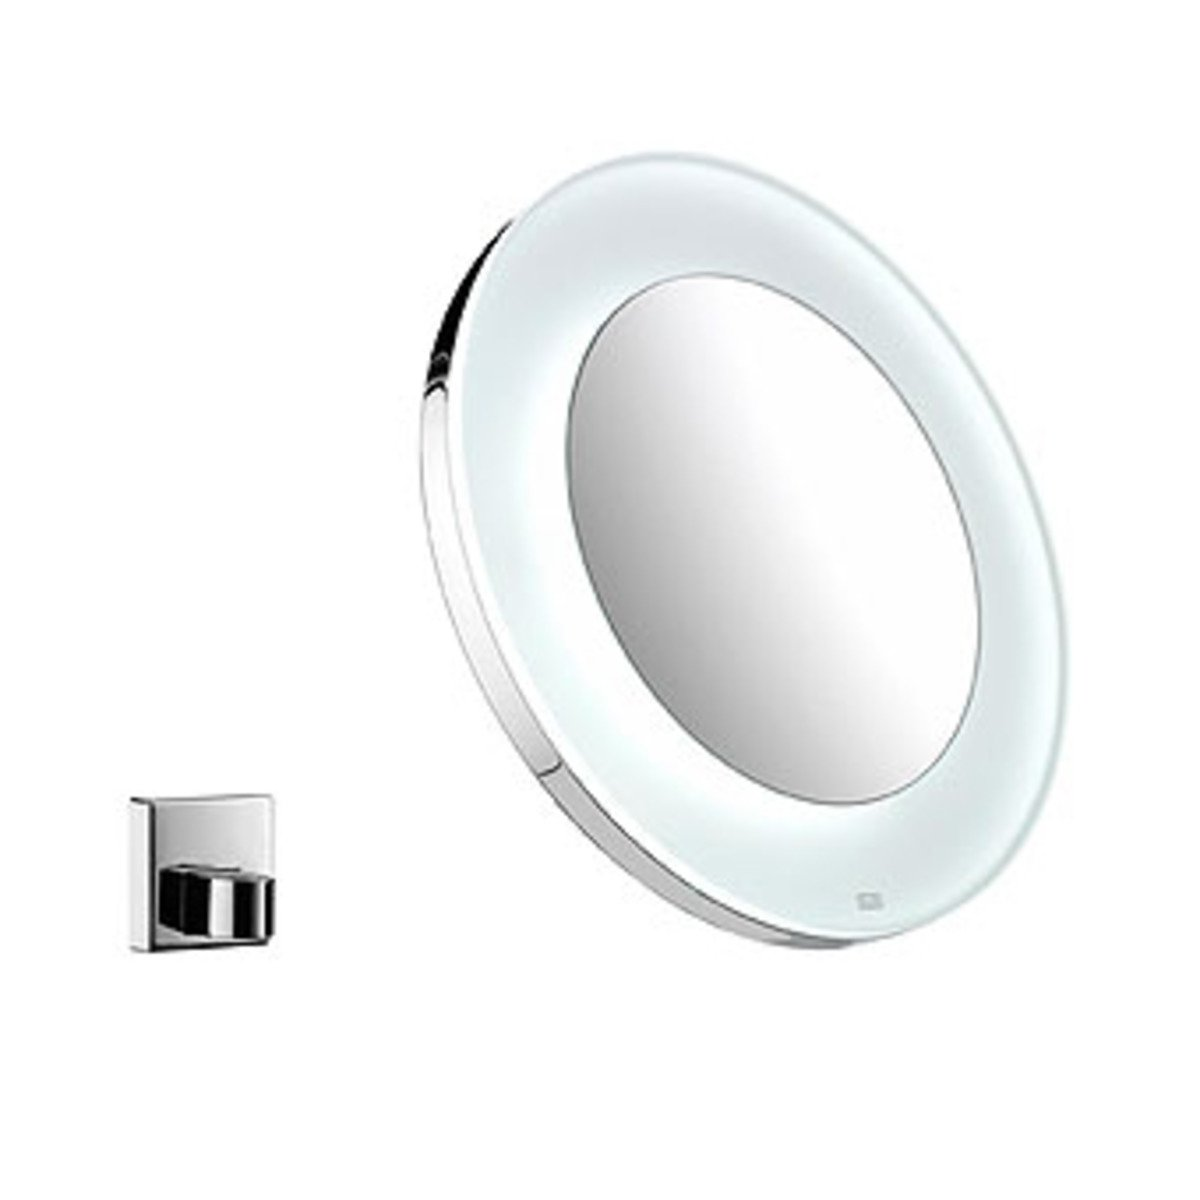 emco miroir grossissant rond avec clairage led avec support mural chrome 109600113. Black Bedroom Furniture Sets. Home Design Ideas